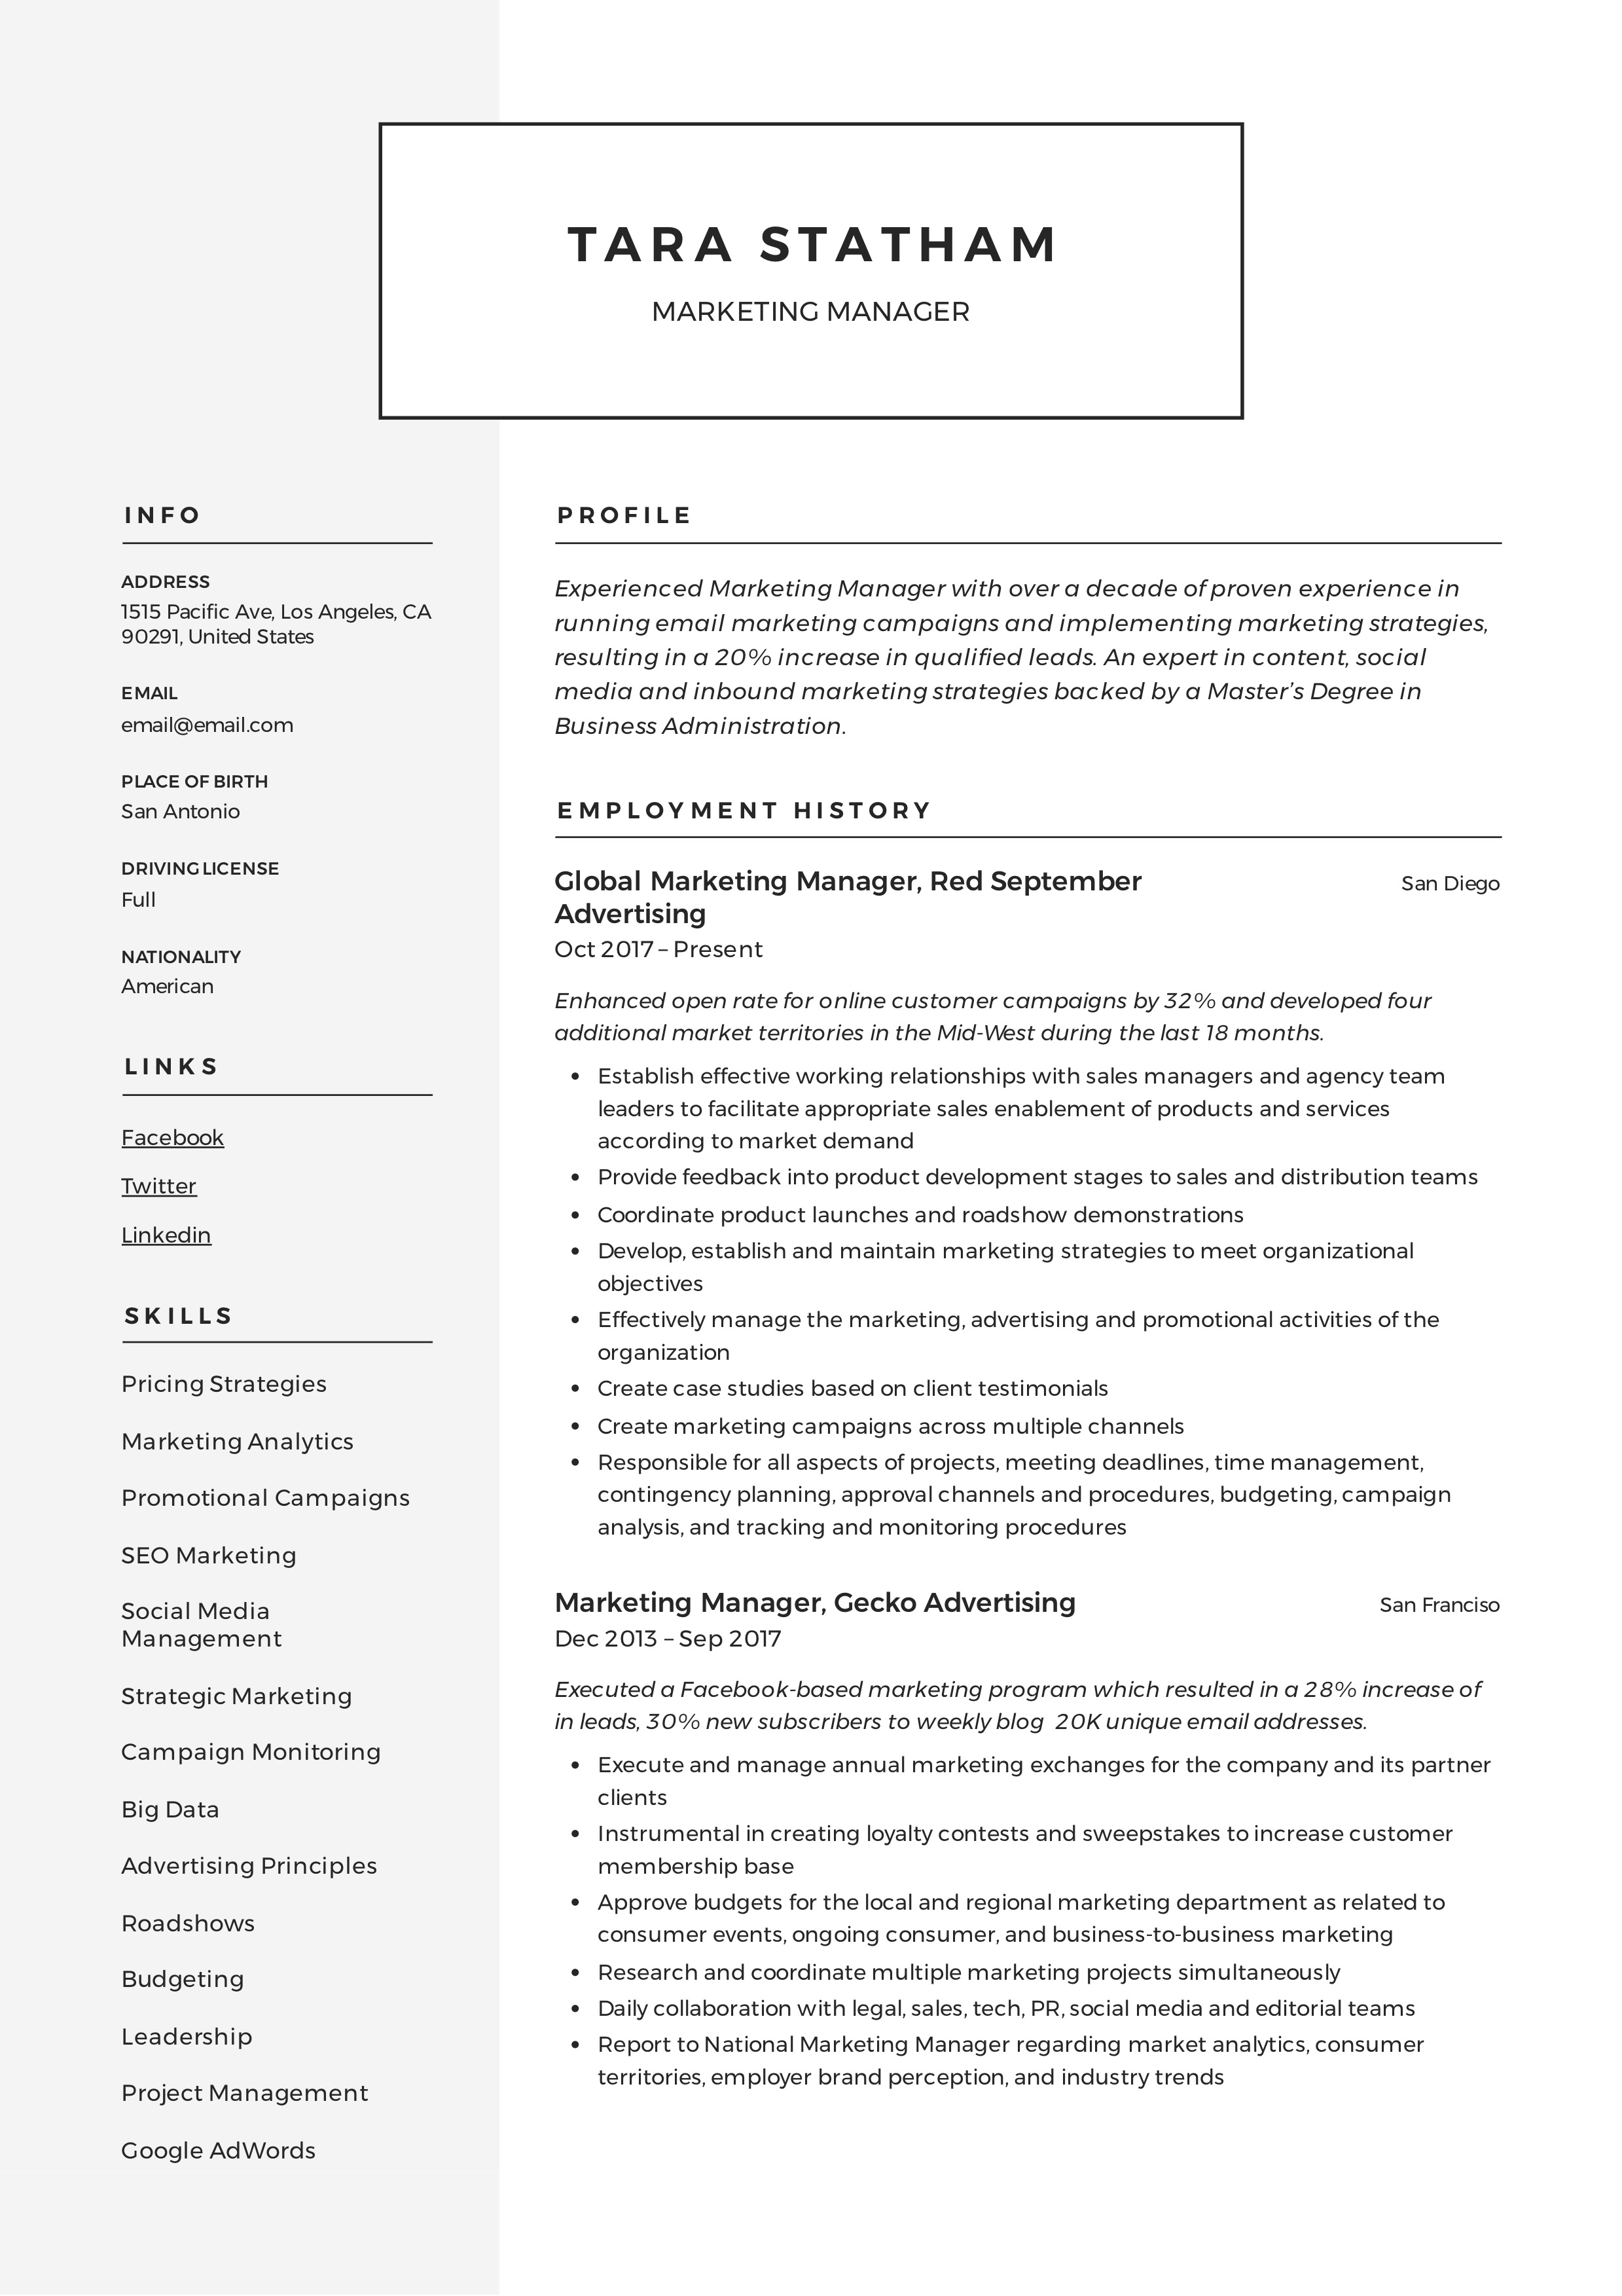 resume examples for marketing professionals